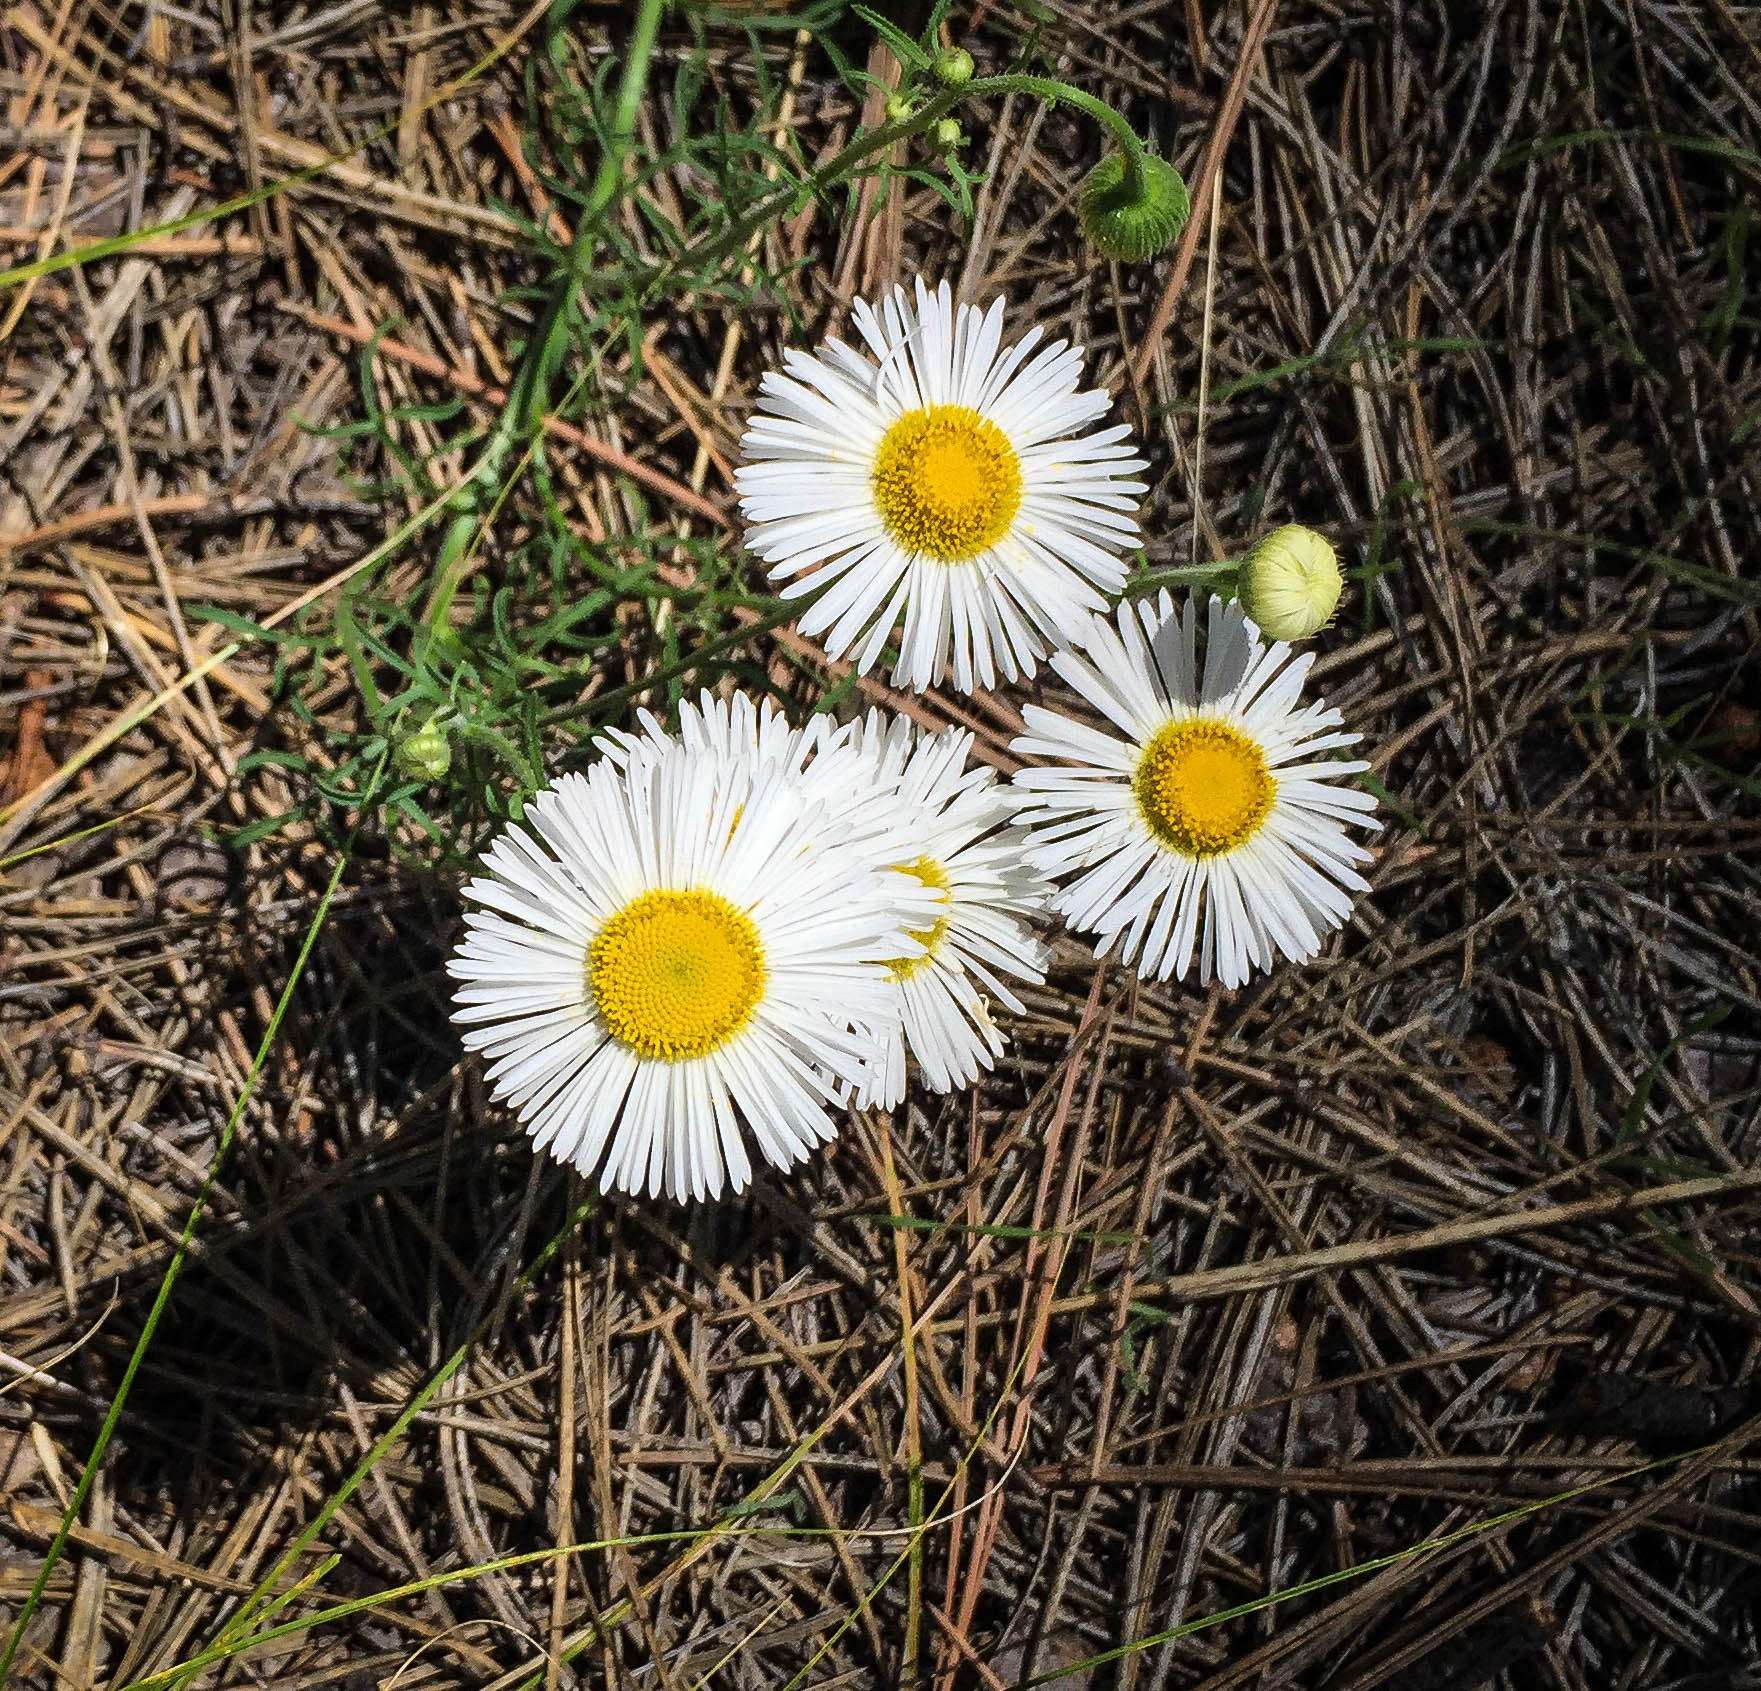 These fringed daisies were quite common along with several varieties of yellow wildflowers and occasional patches of Indian Paintbrush.